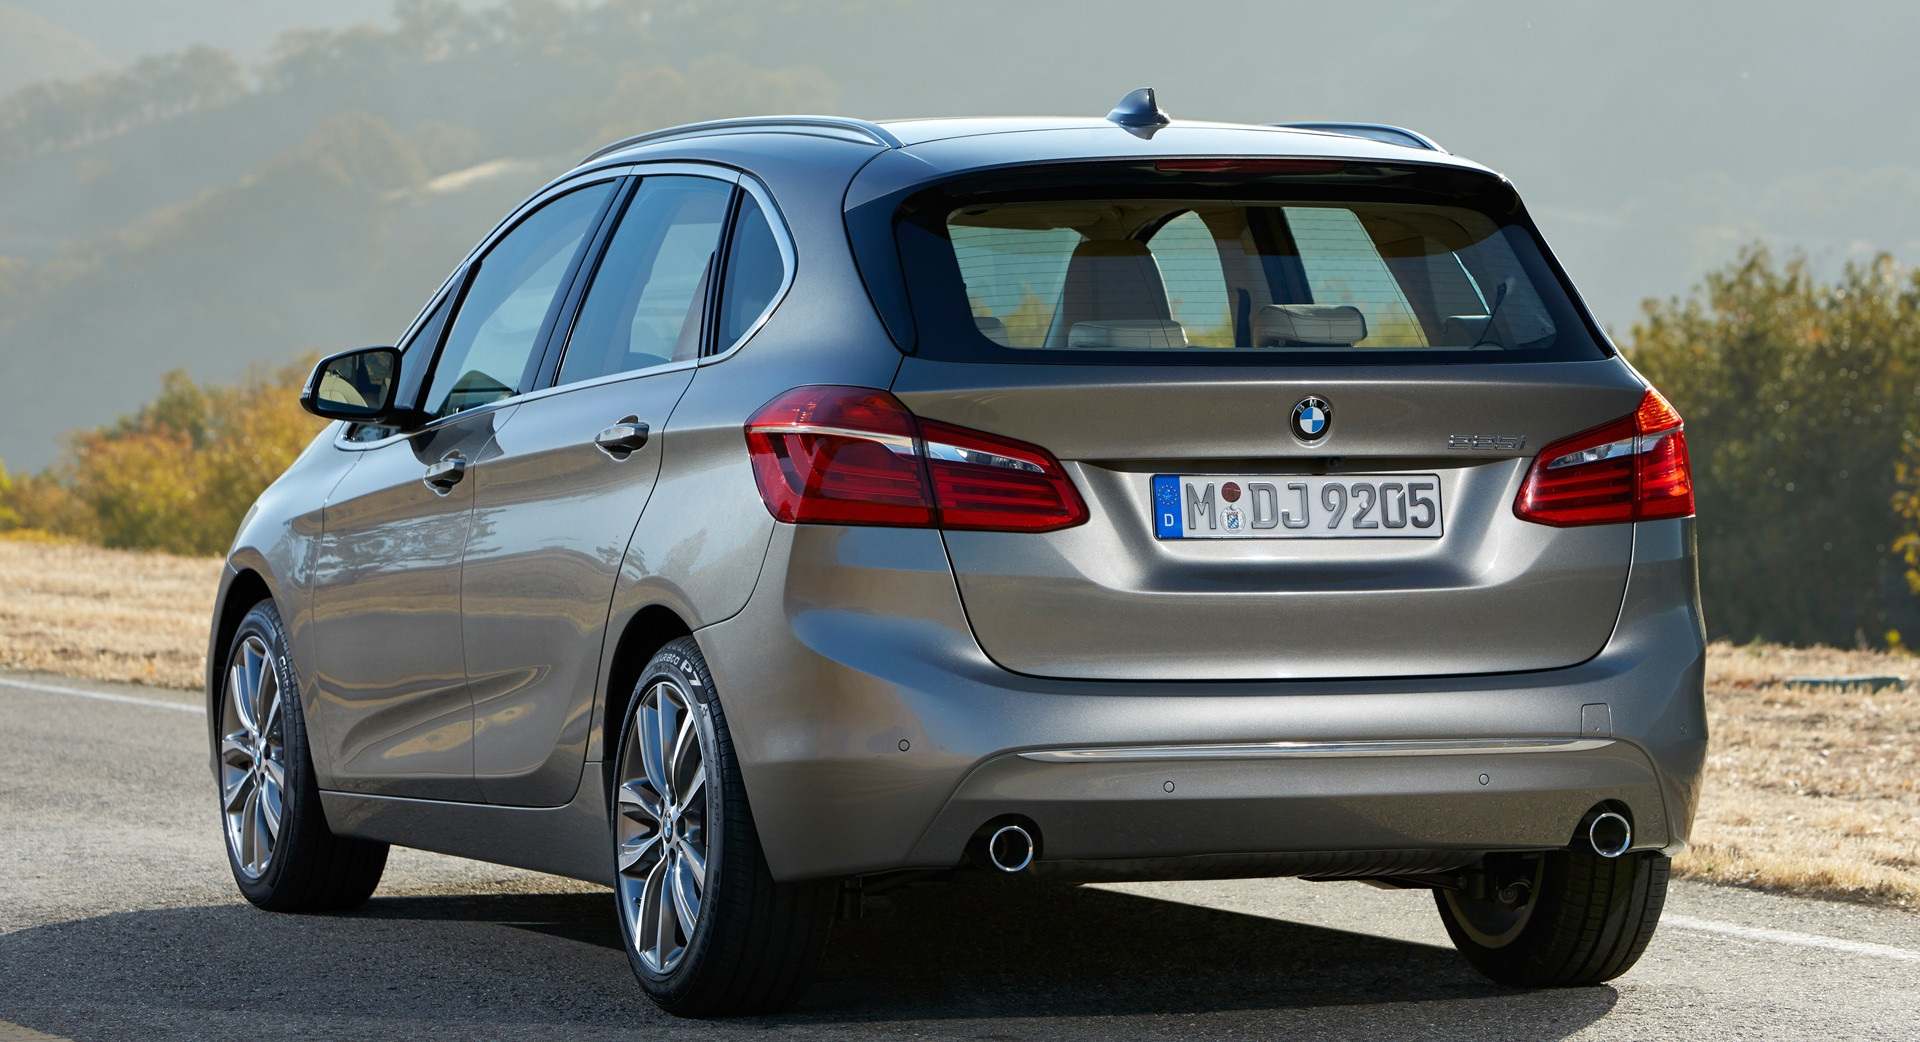 2015 BMW 2 Series Active Tourer 225i Rear Photo